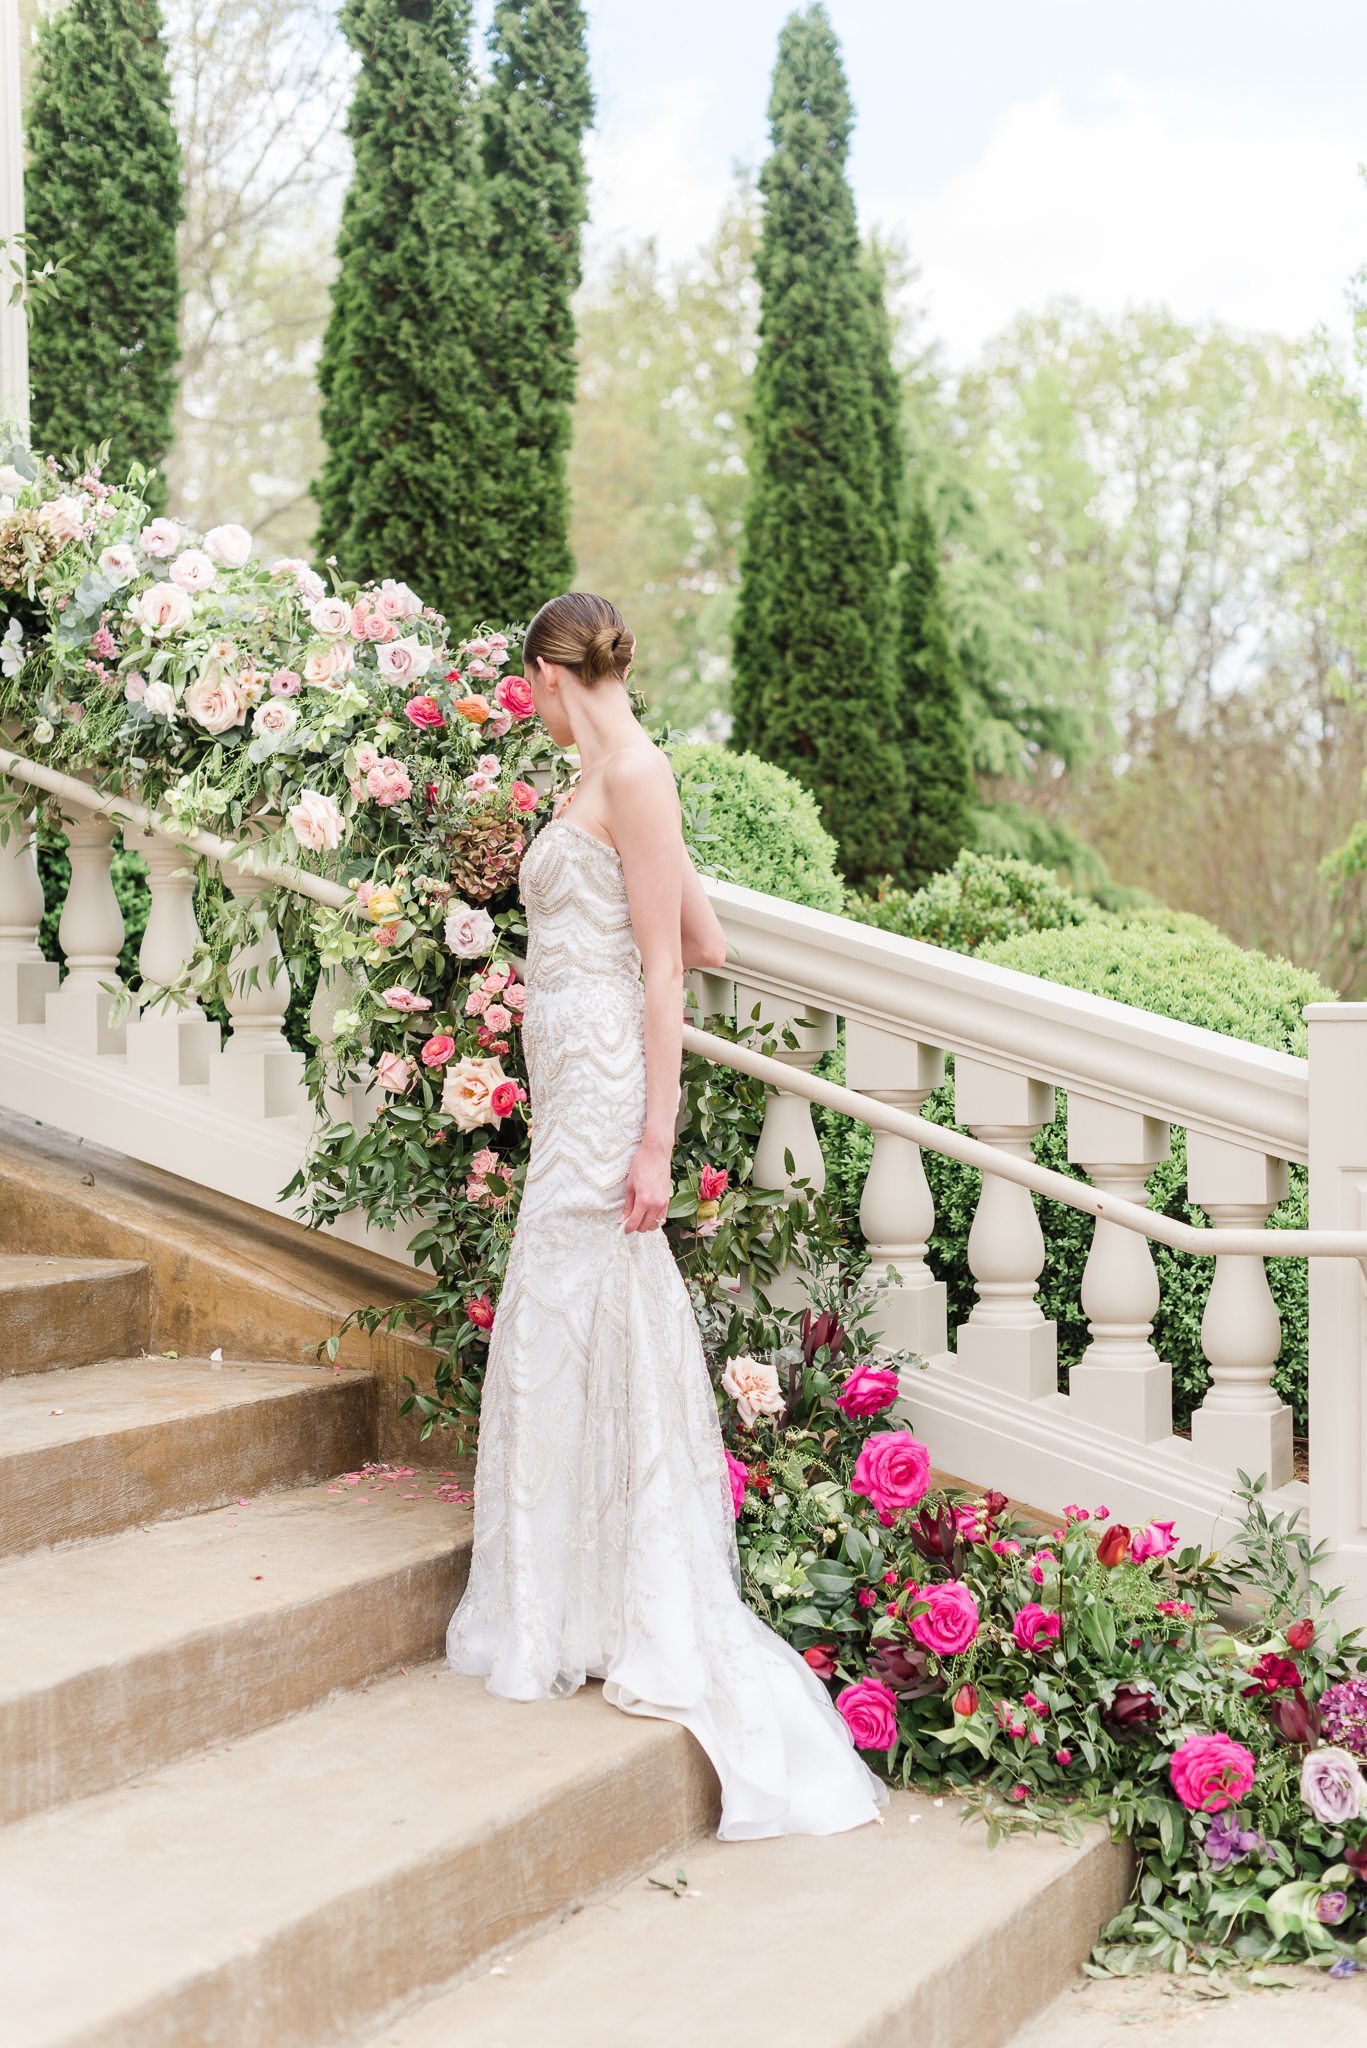 Wedding Day Bridal Portraits with flowers-9.jpg